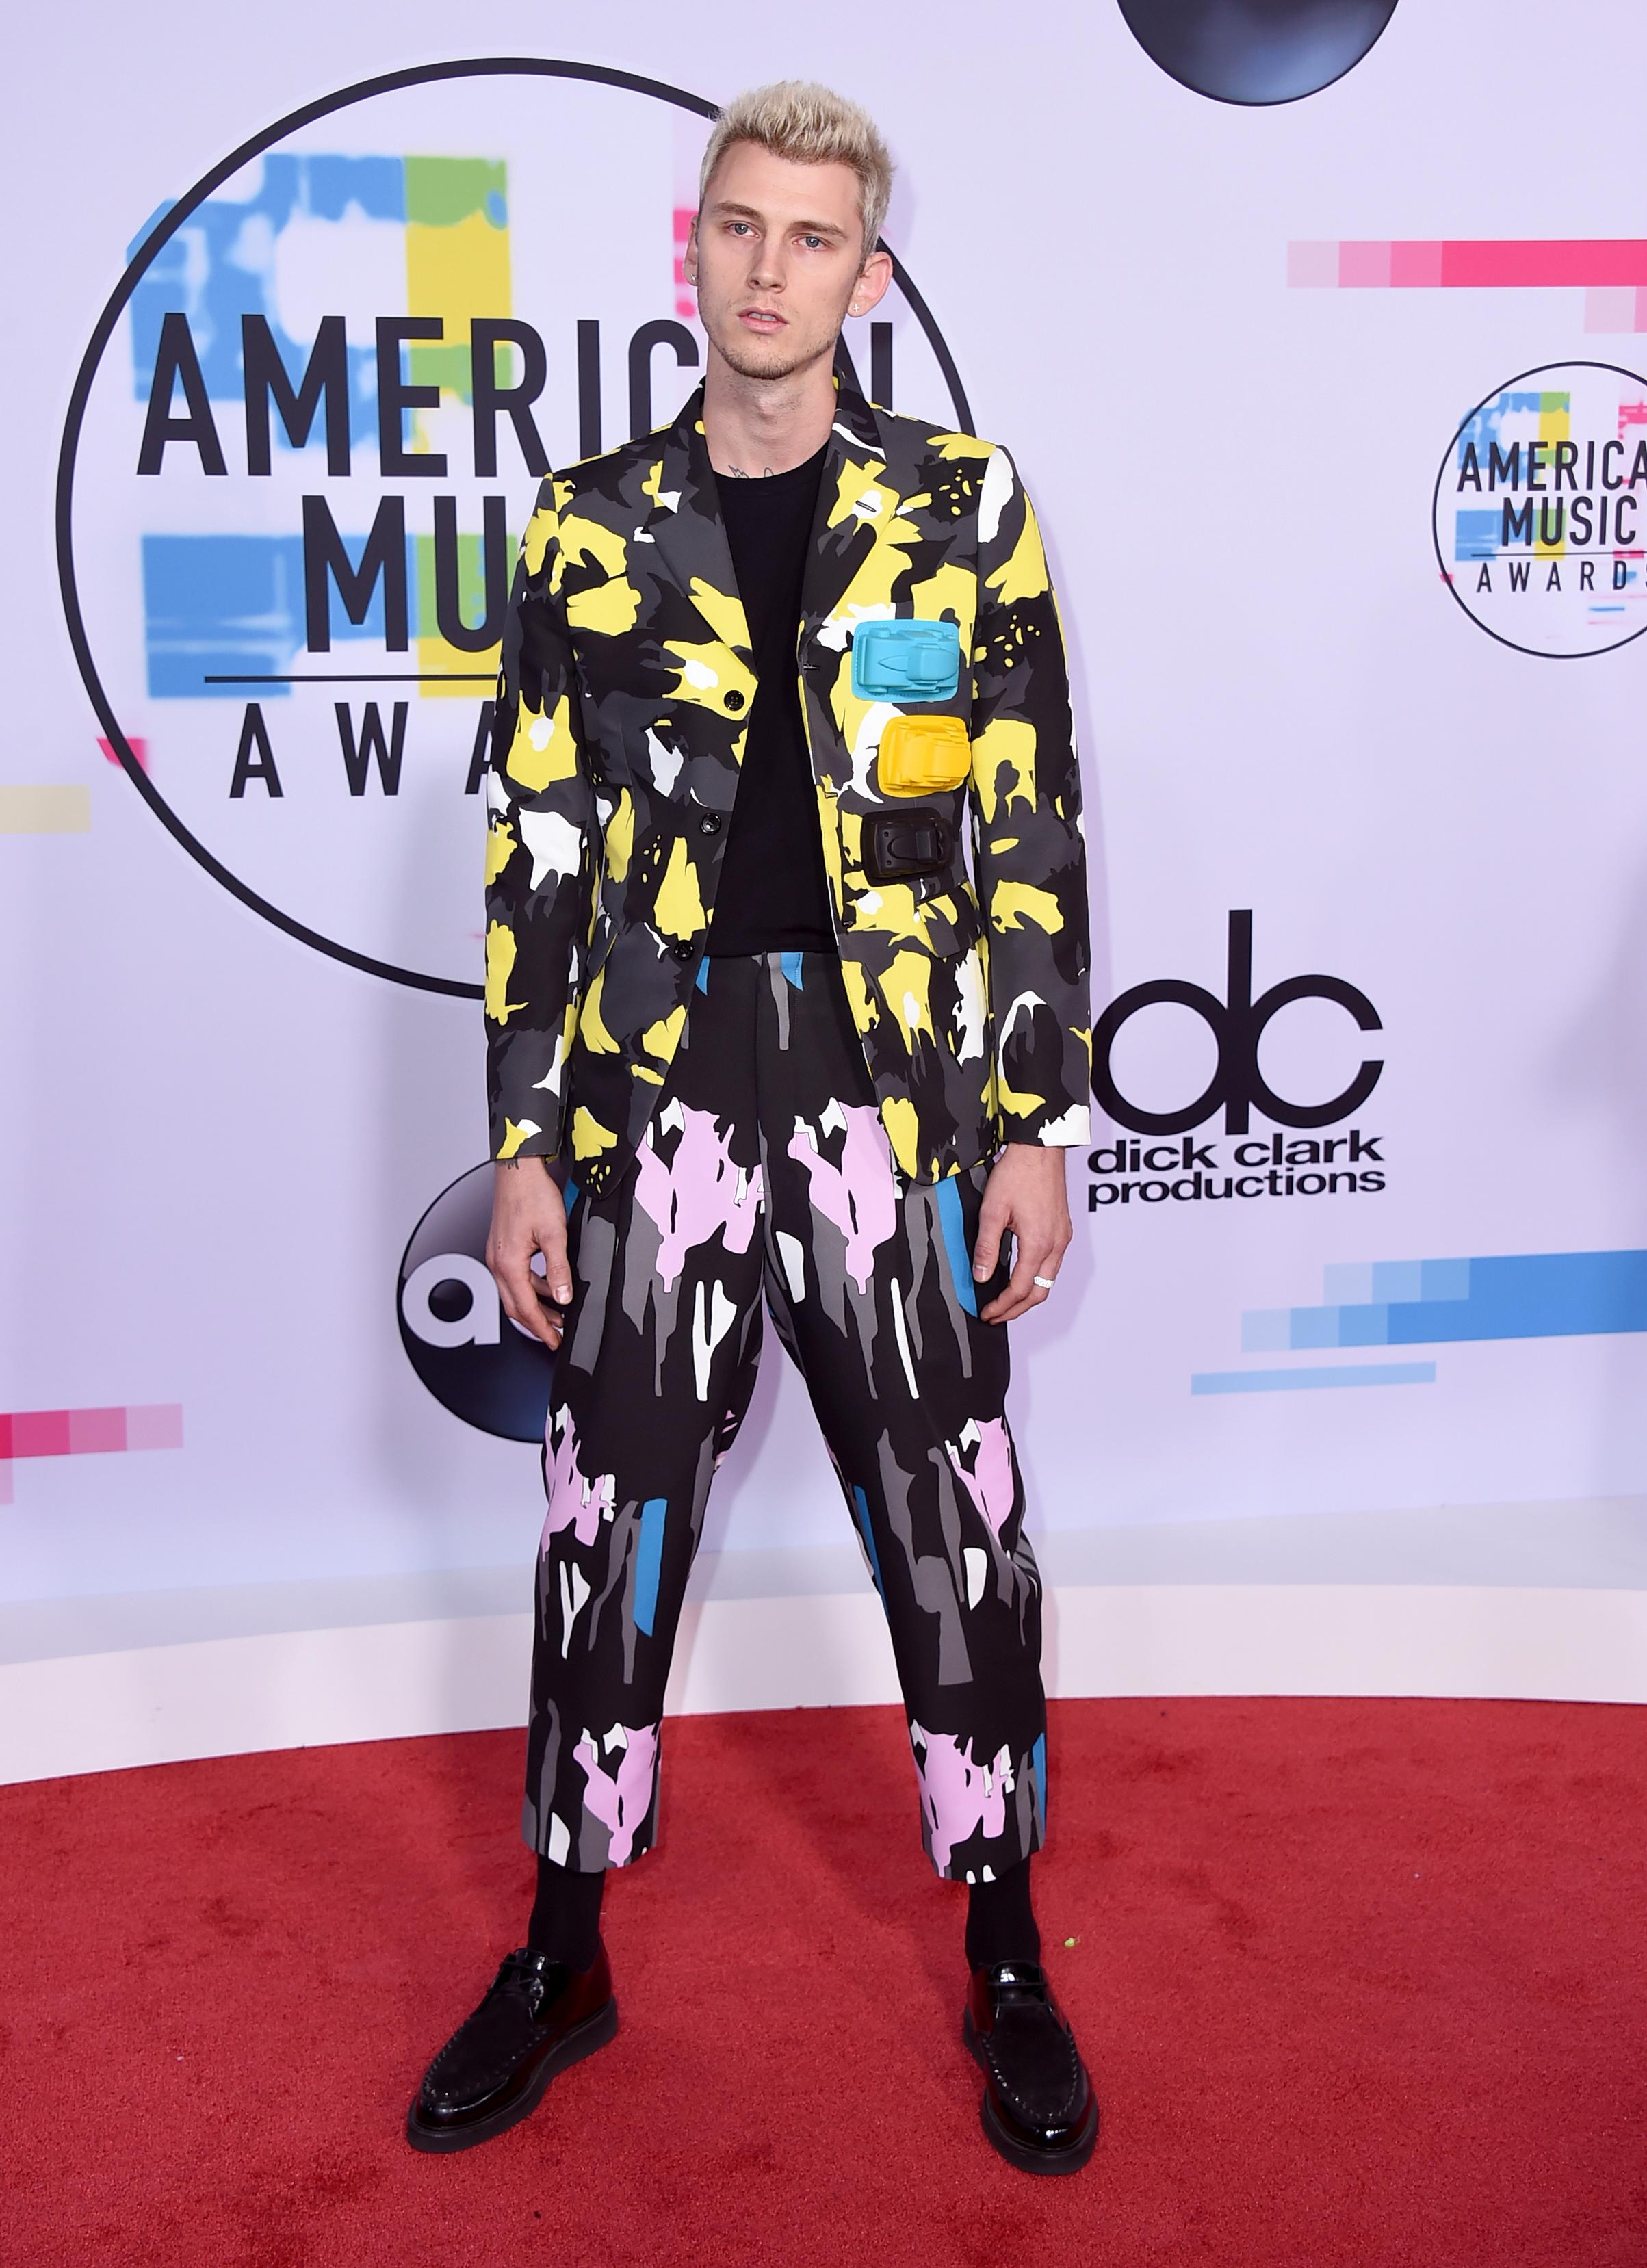 Machine Gun Kelly arrives at the American Music Awards at the Microsoft Theater on Sunday, Nov. 19, 2017, in Los Angeles. (Photo by Jordan Strauss/Invision/AP)